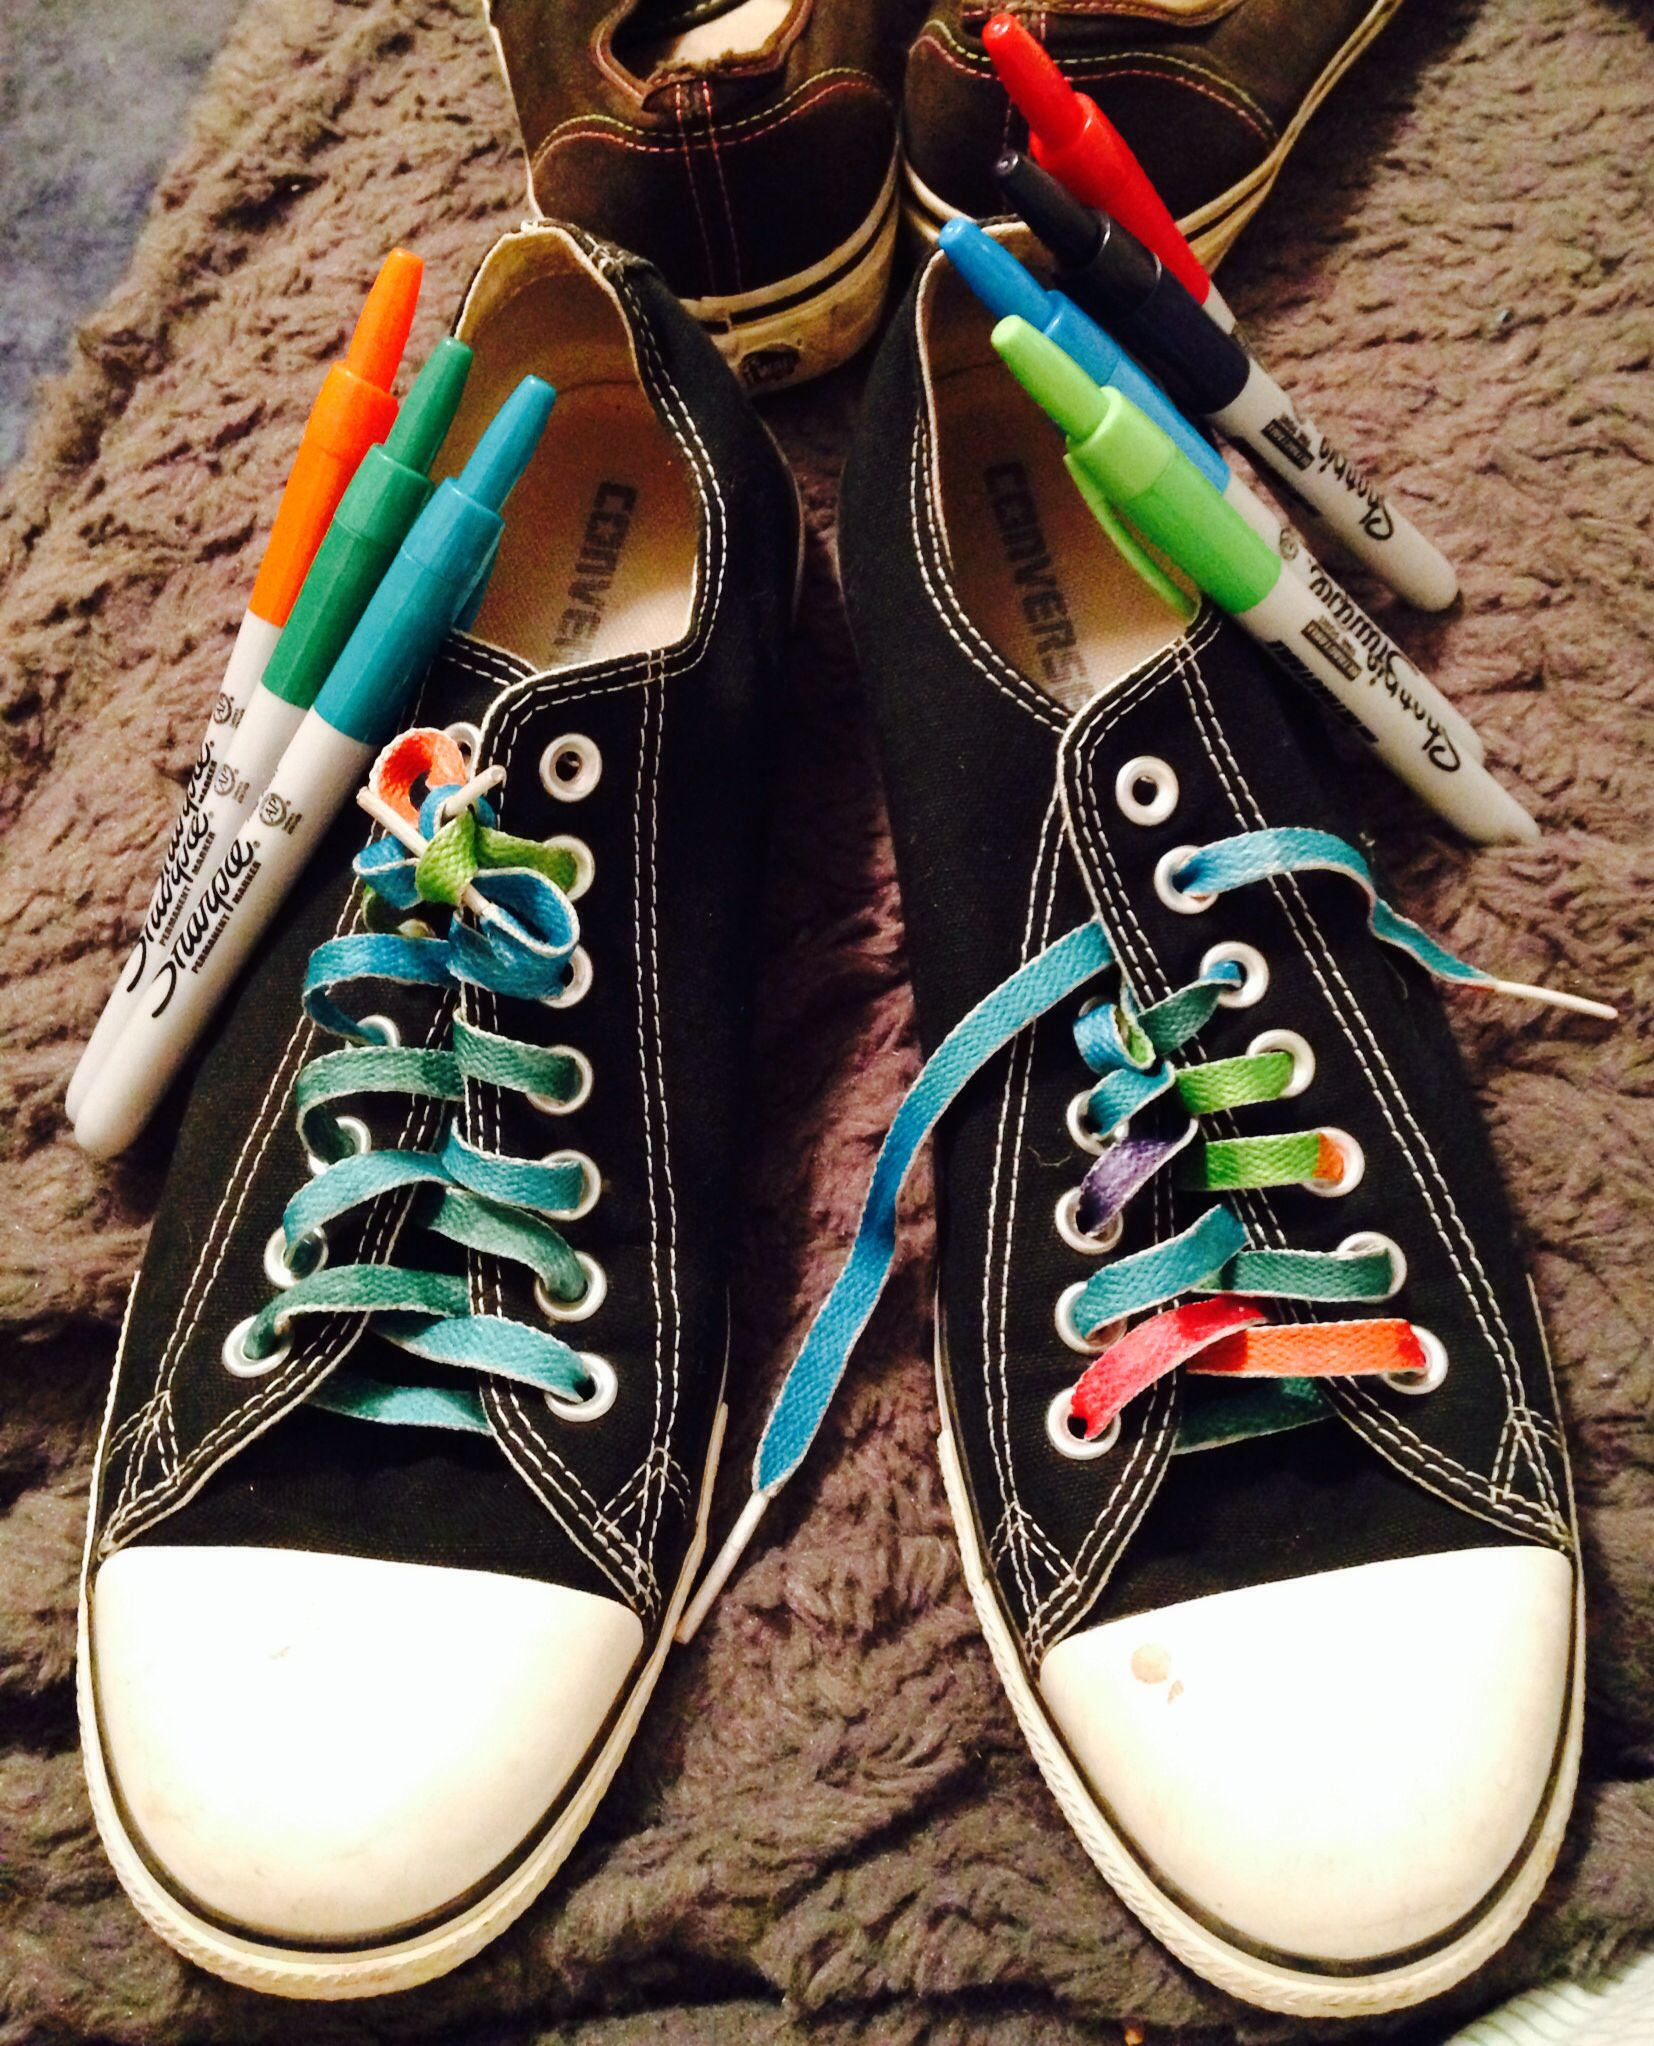 Sharpie, old shoe laces (you can use any shoe laces